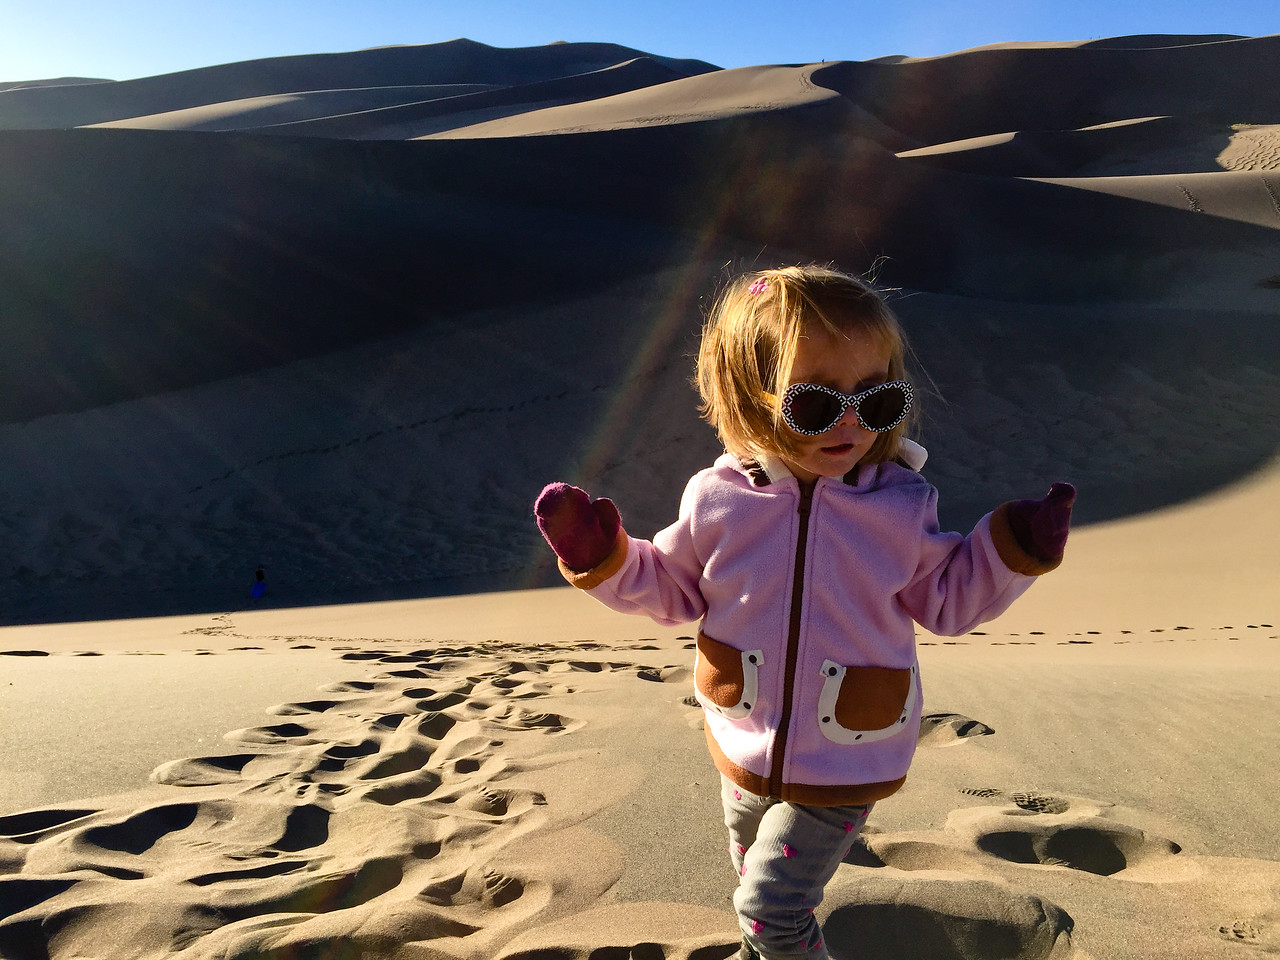 We had fun at the Sand Dunes on our way to Durango. <br /> Fall Break 2016<br /> Celia was 3 years and 2 months old<br /> Evan was 6 years and 4 months old<br /> Colorado